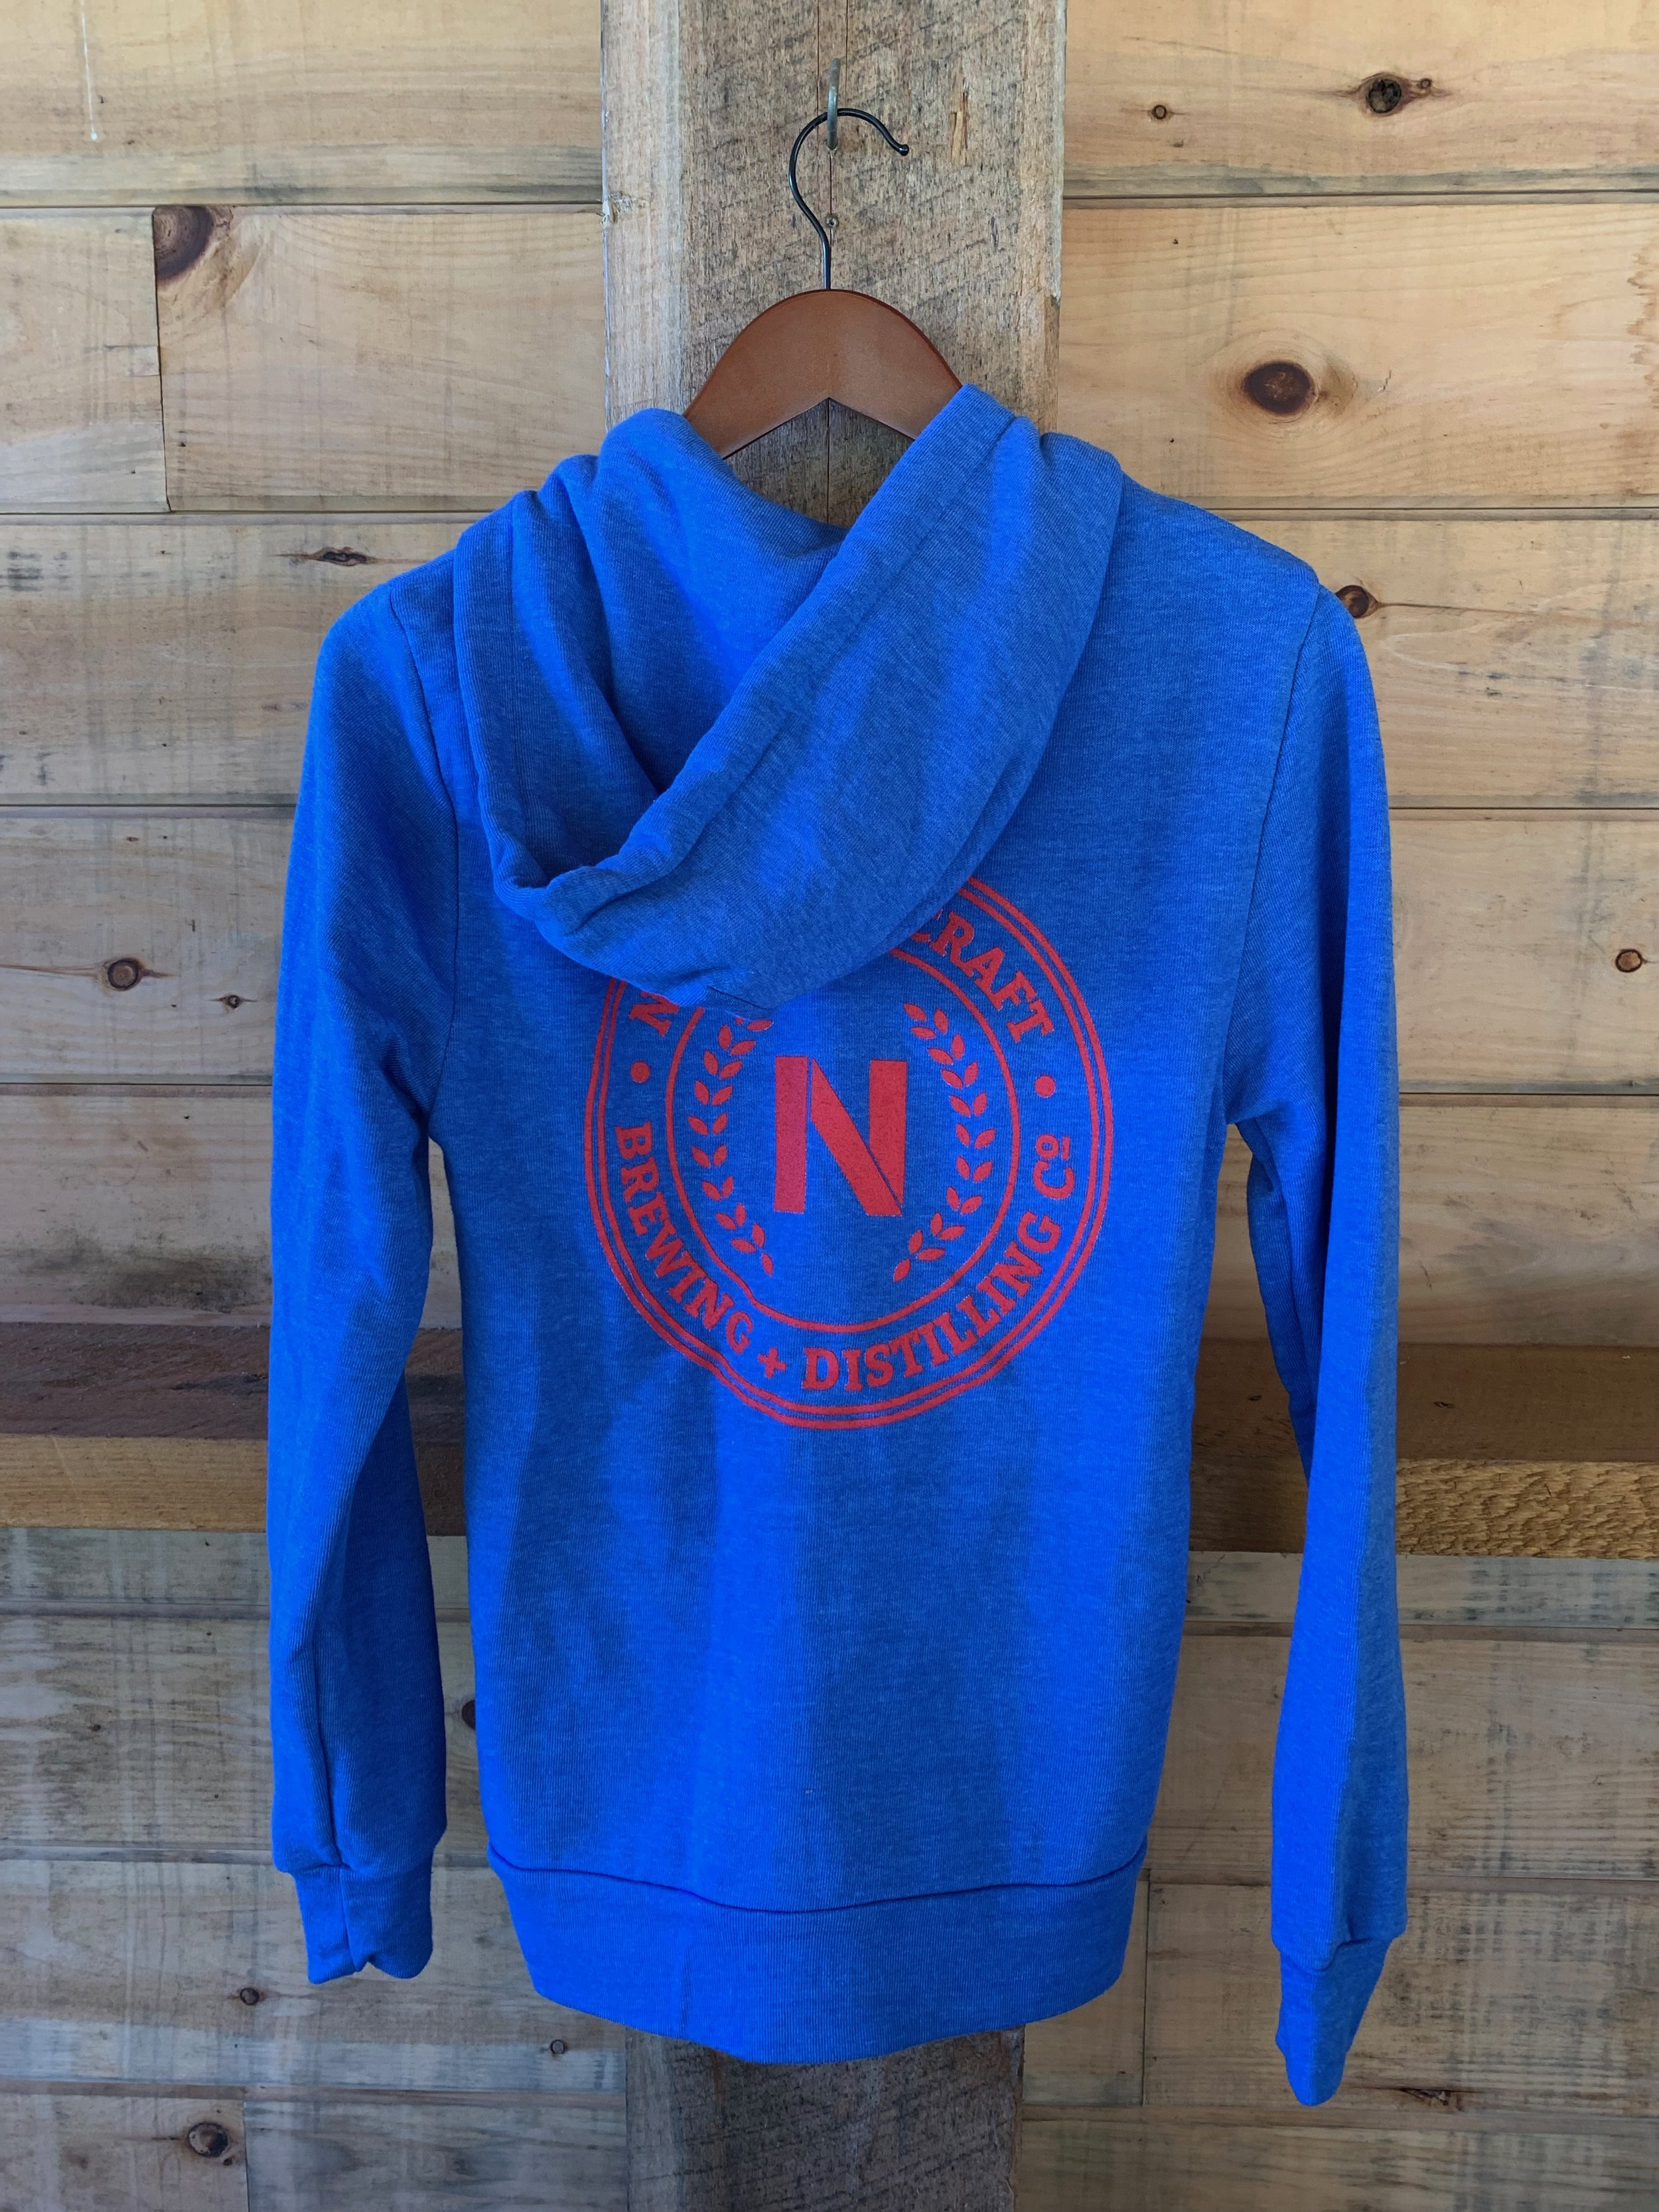 Blue Zip-up Hoodie $44 - Available in XS-XXL.